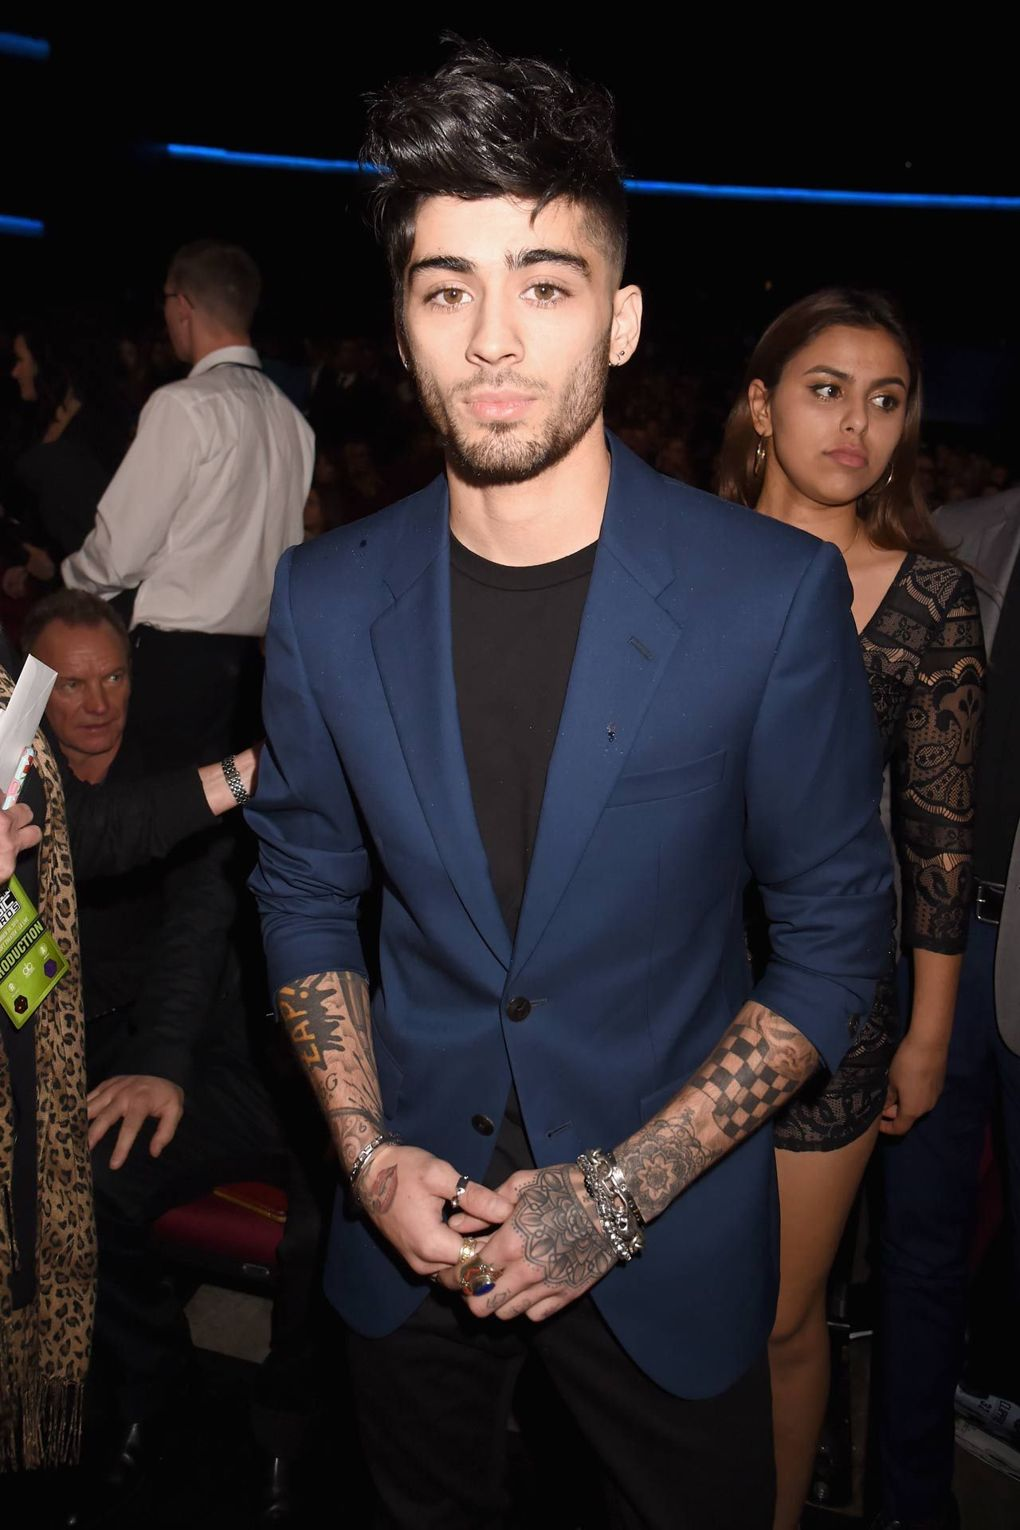 Zayn Malik winner of Best Dressed at GQ Awards